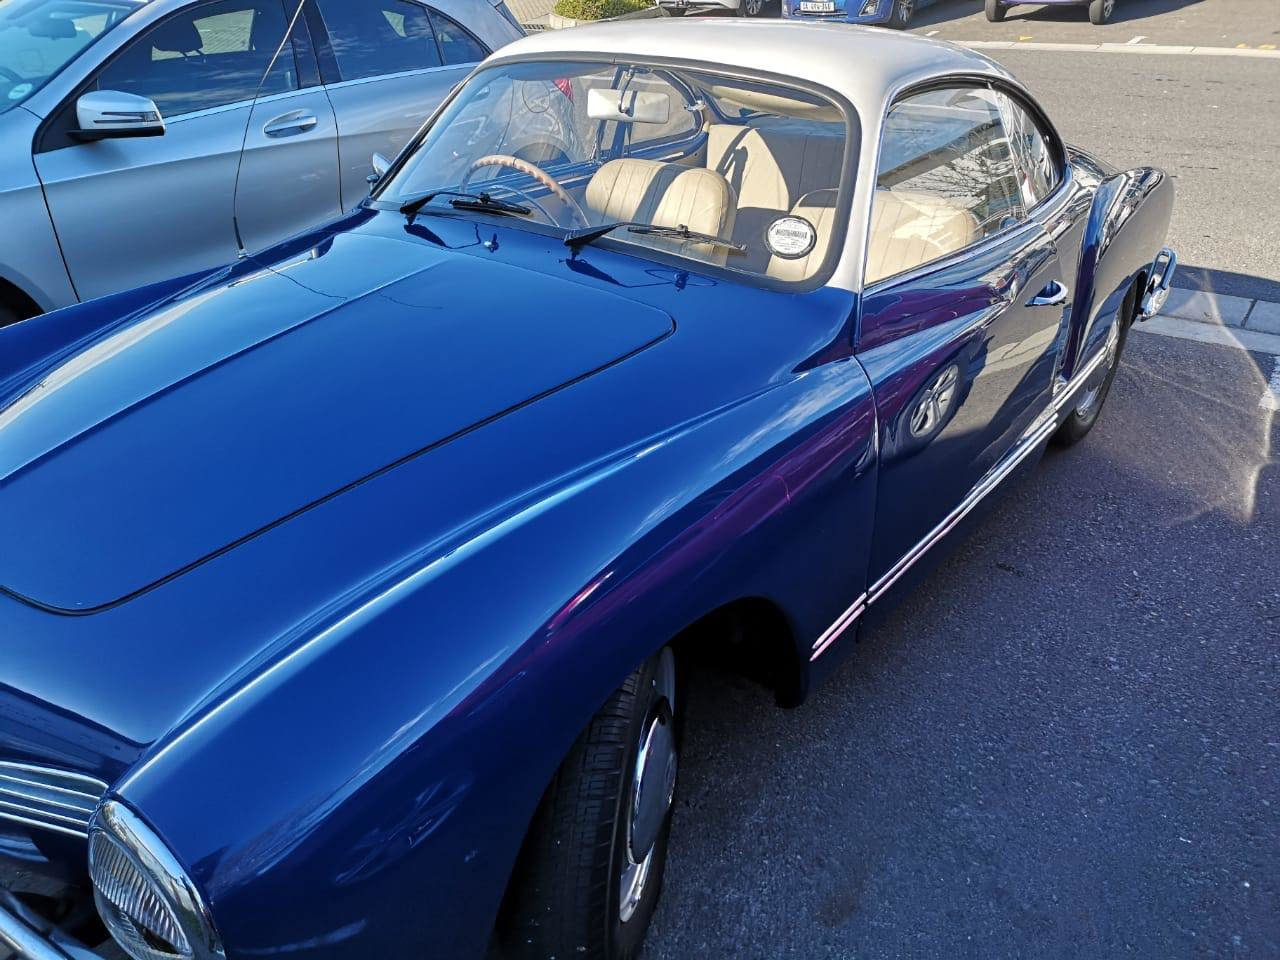 1966 KARMANN GHIA RHD  For Sale (picture 1 of 5)